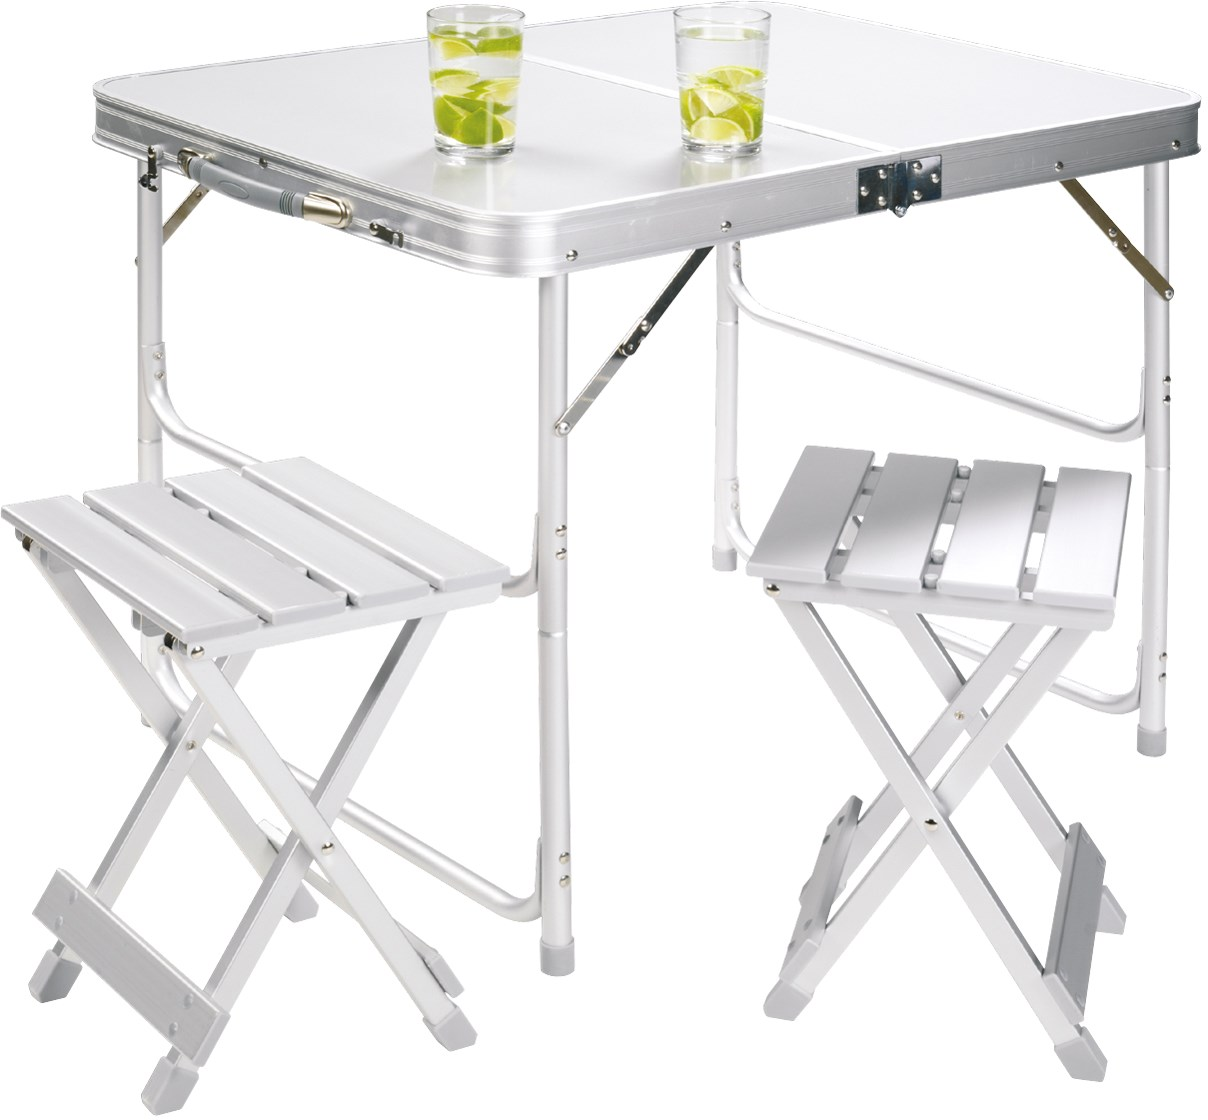 Alu table set for 2